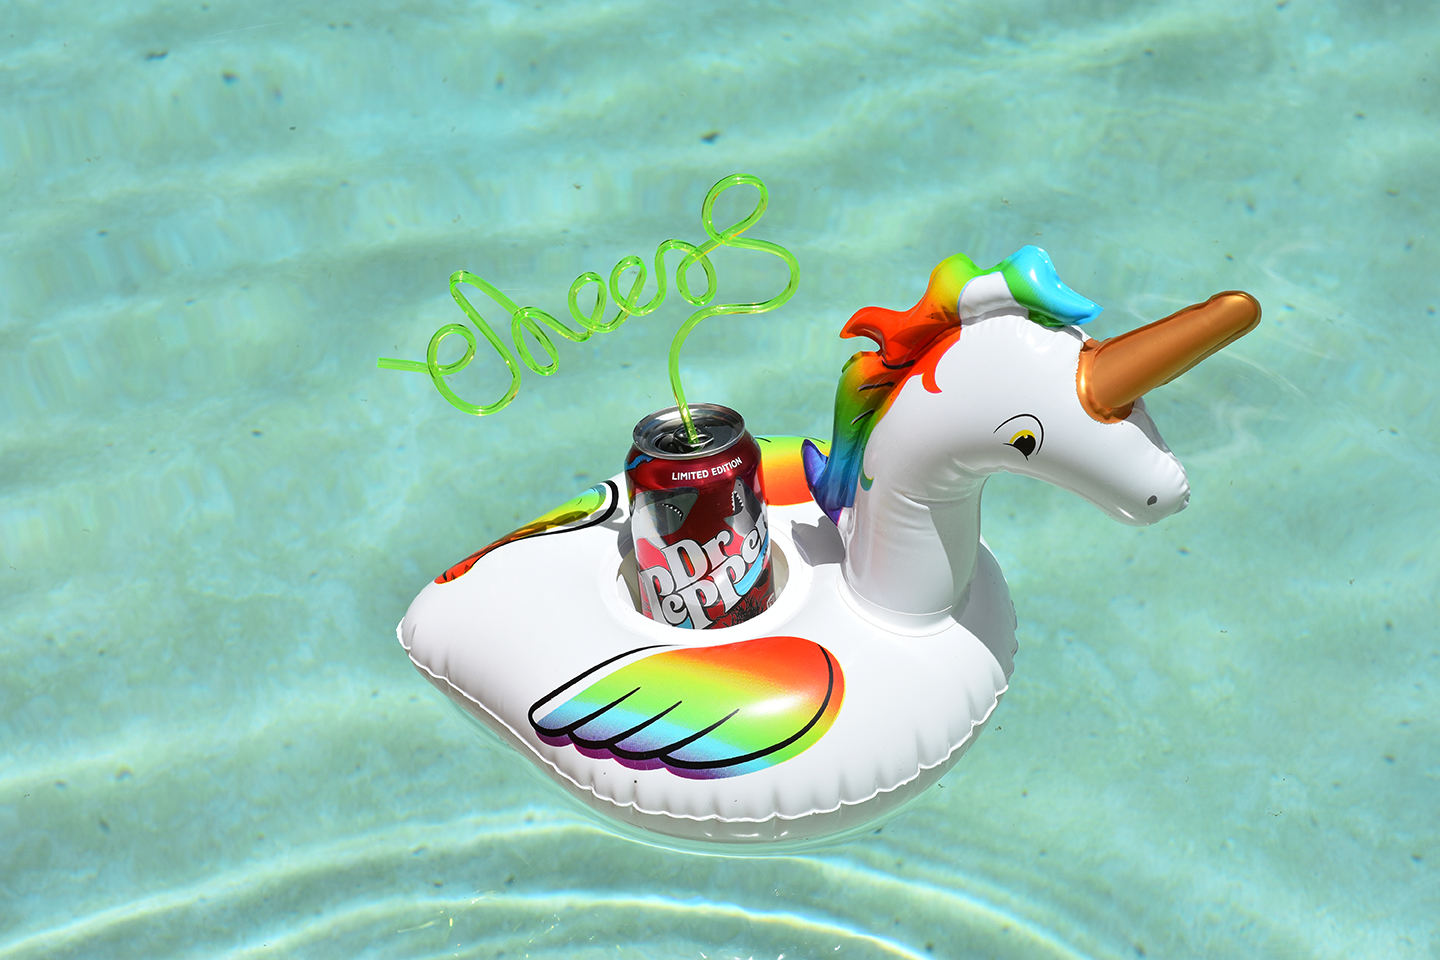 Pool party ideas for adults, backyard pool party ideas for adults, pool party for adults ideas